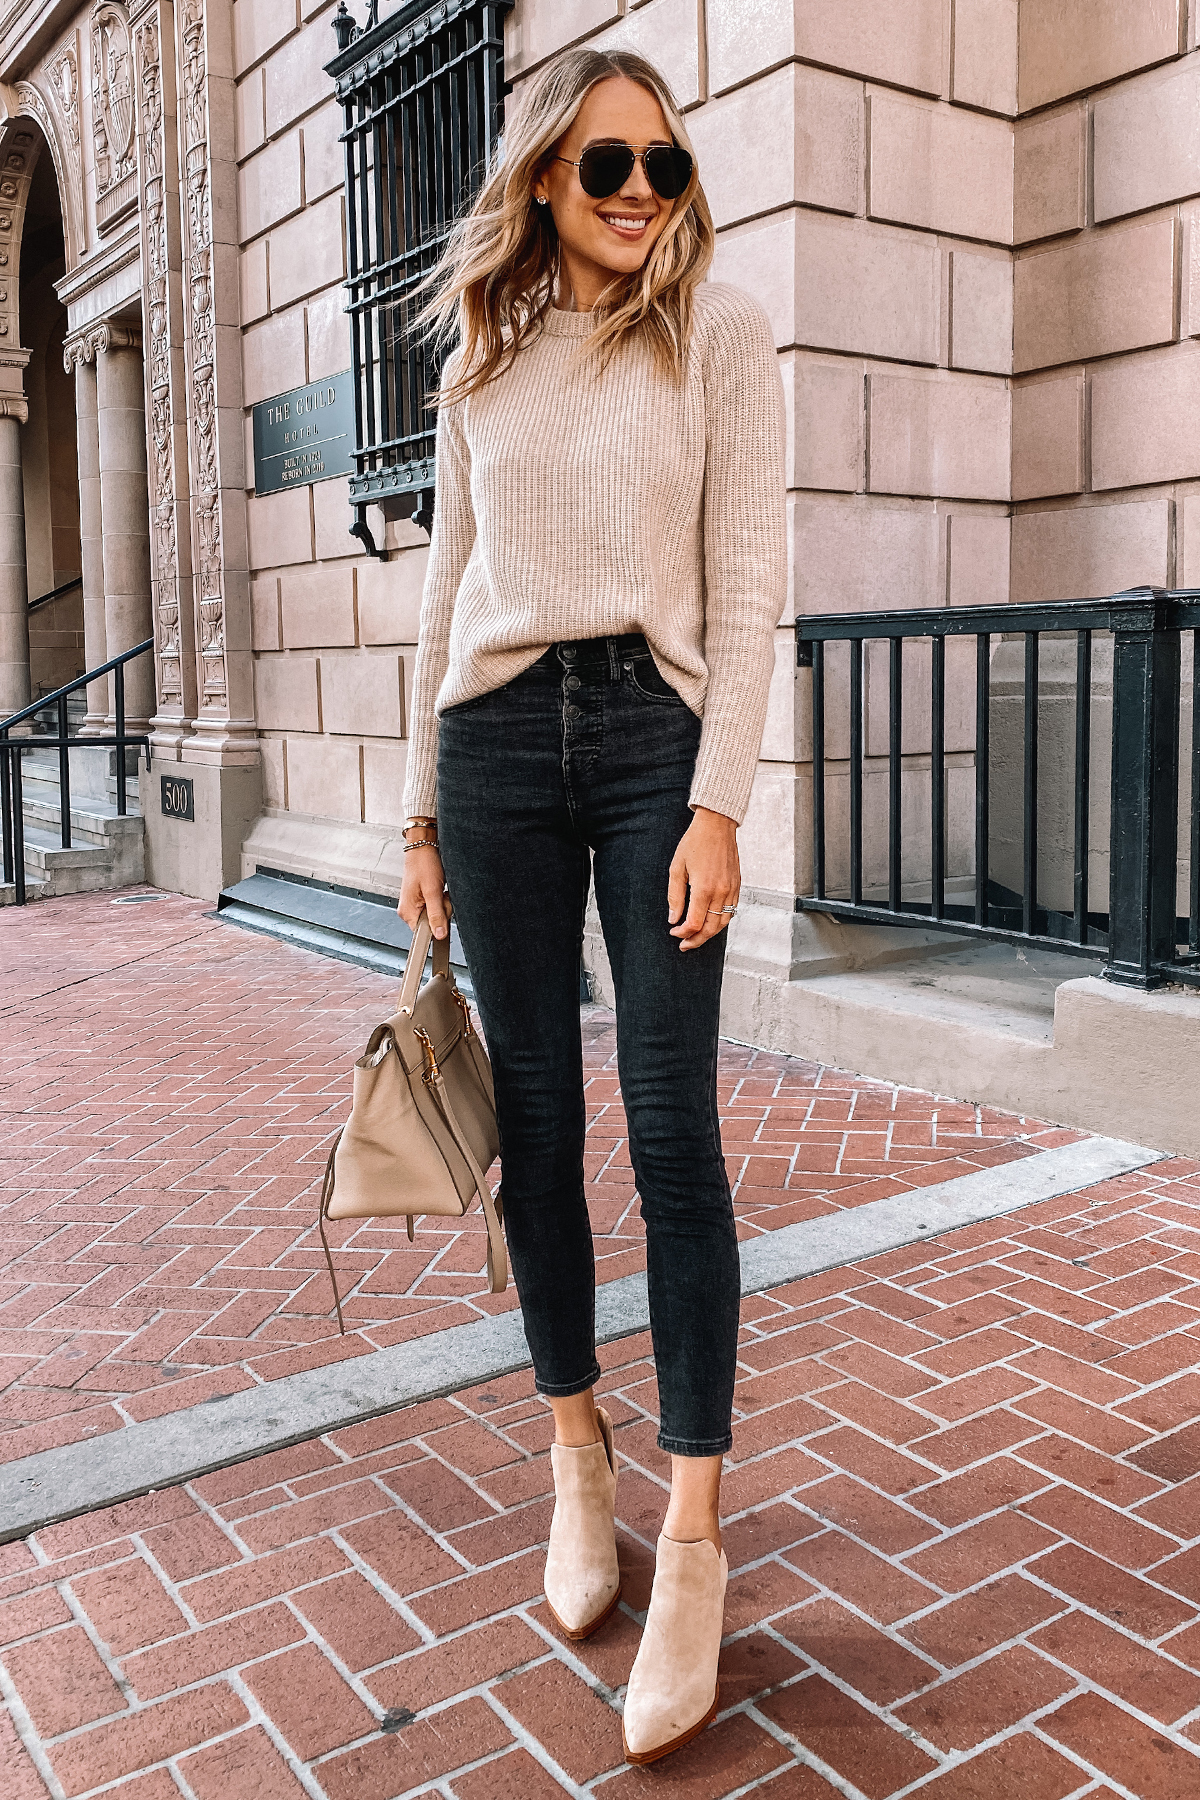 Fashion Jackson Wearing Everlane Button Front Jeans Beige Sweater Tan Suede Booties